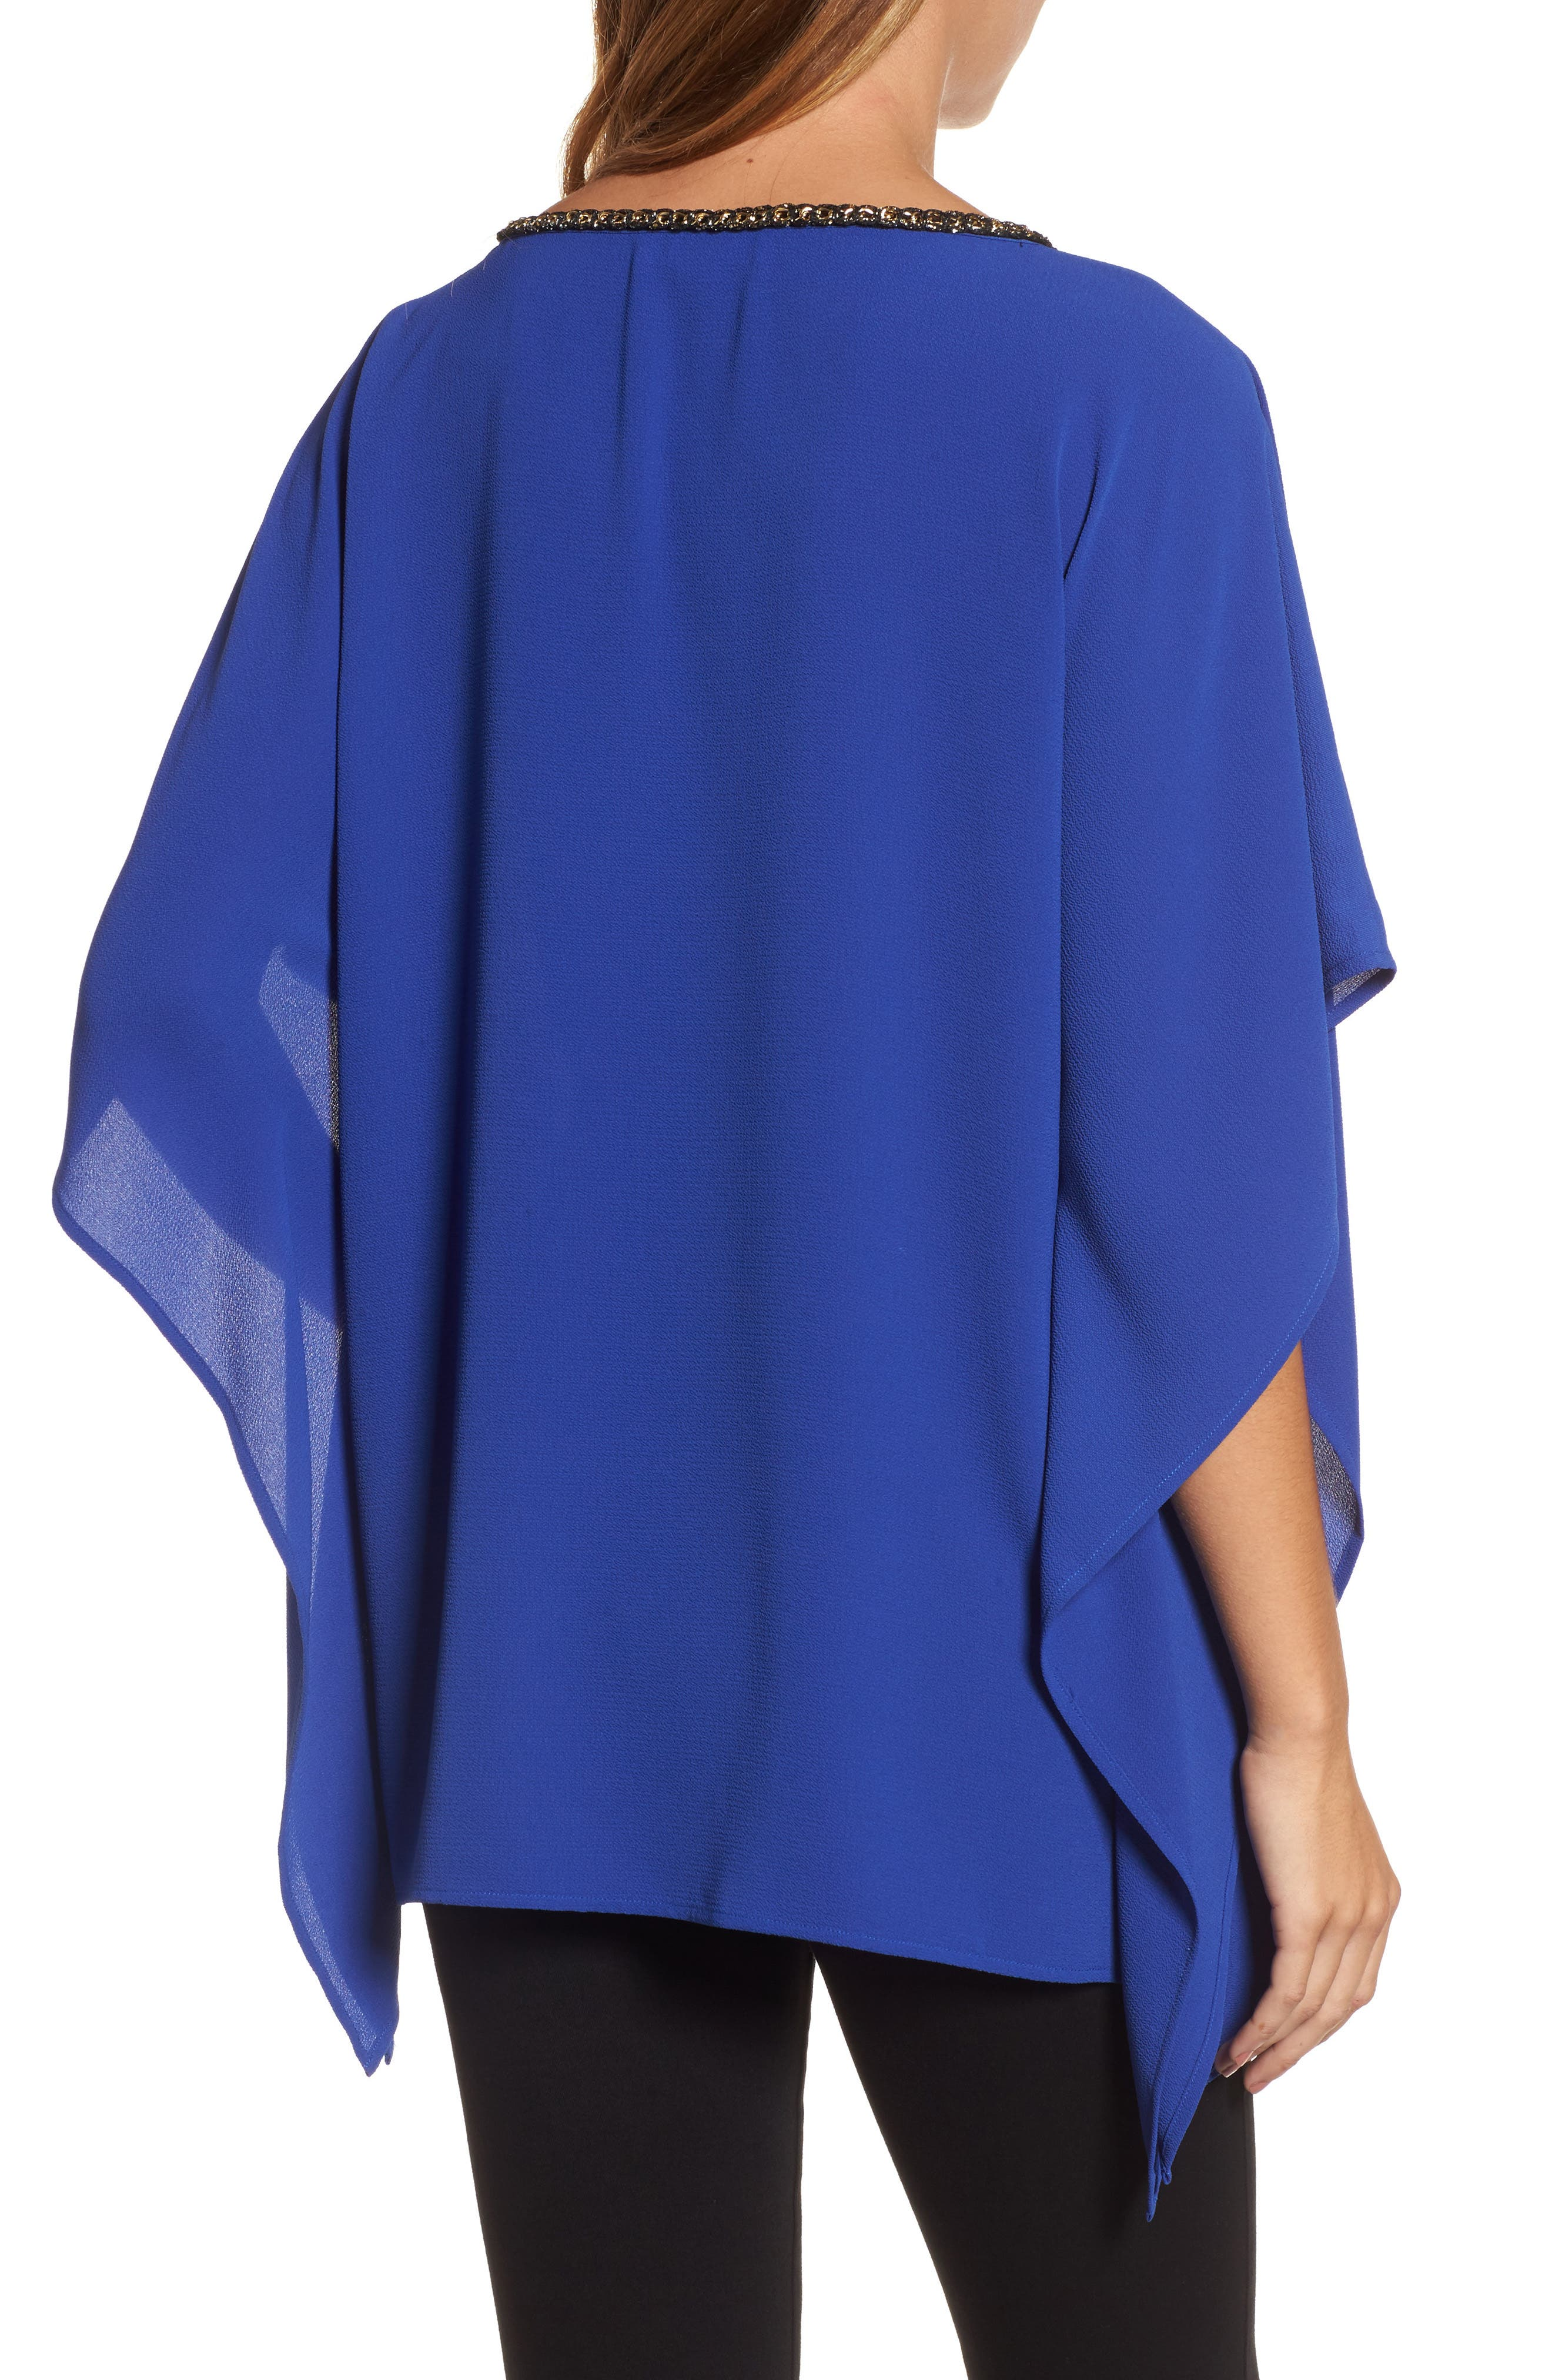 Chain Neck Top,                             Alternate thumbnail 2, color,                             Bright Royal